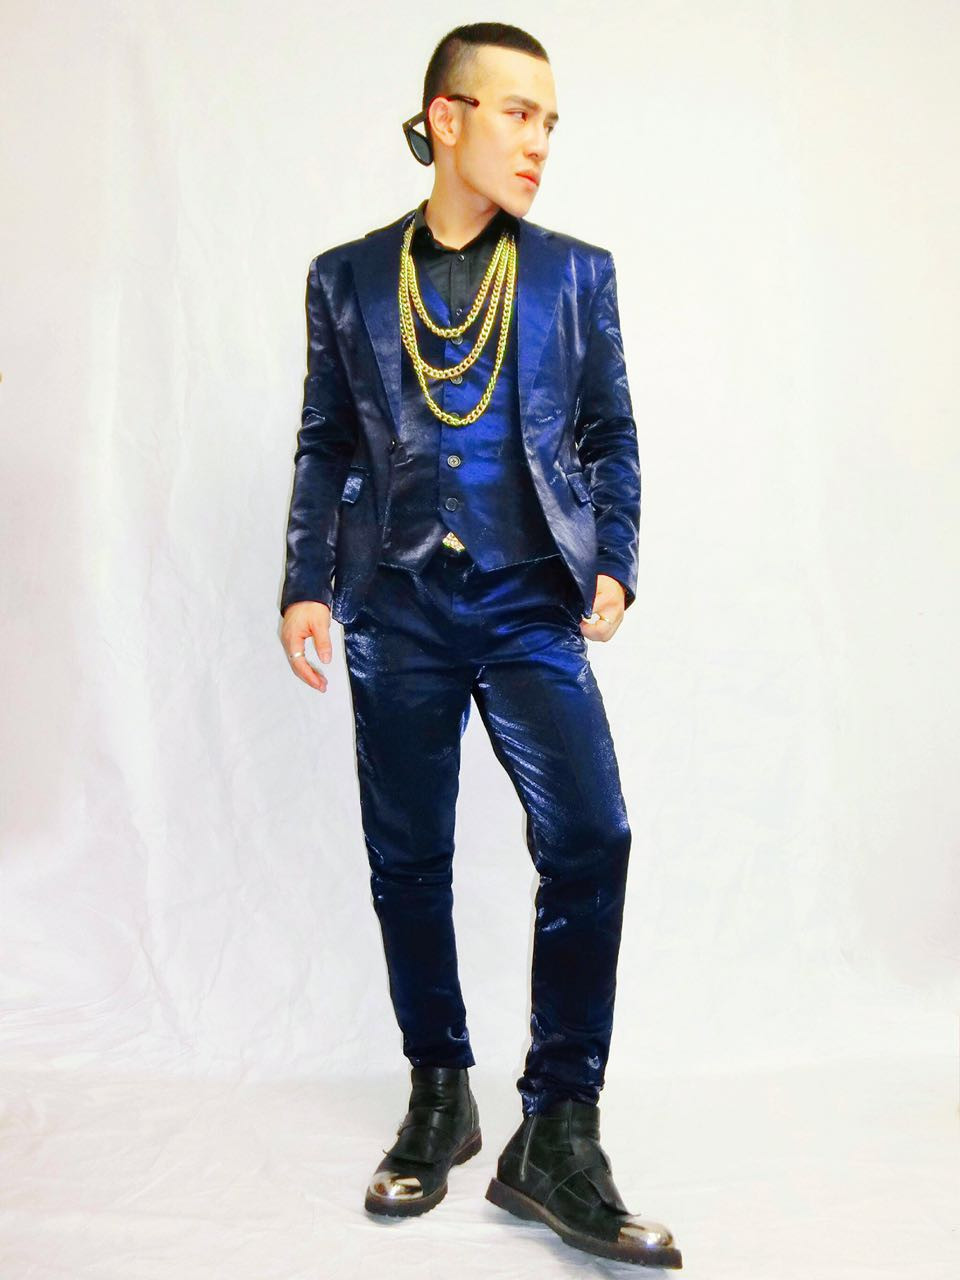 New mens spring blue red three-piece suits set nightclub stage host singer costume suit (coat + vest + pants)